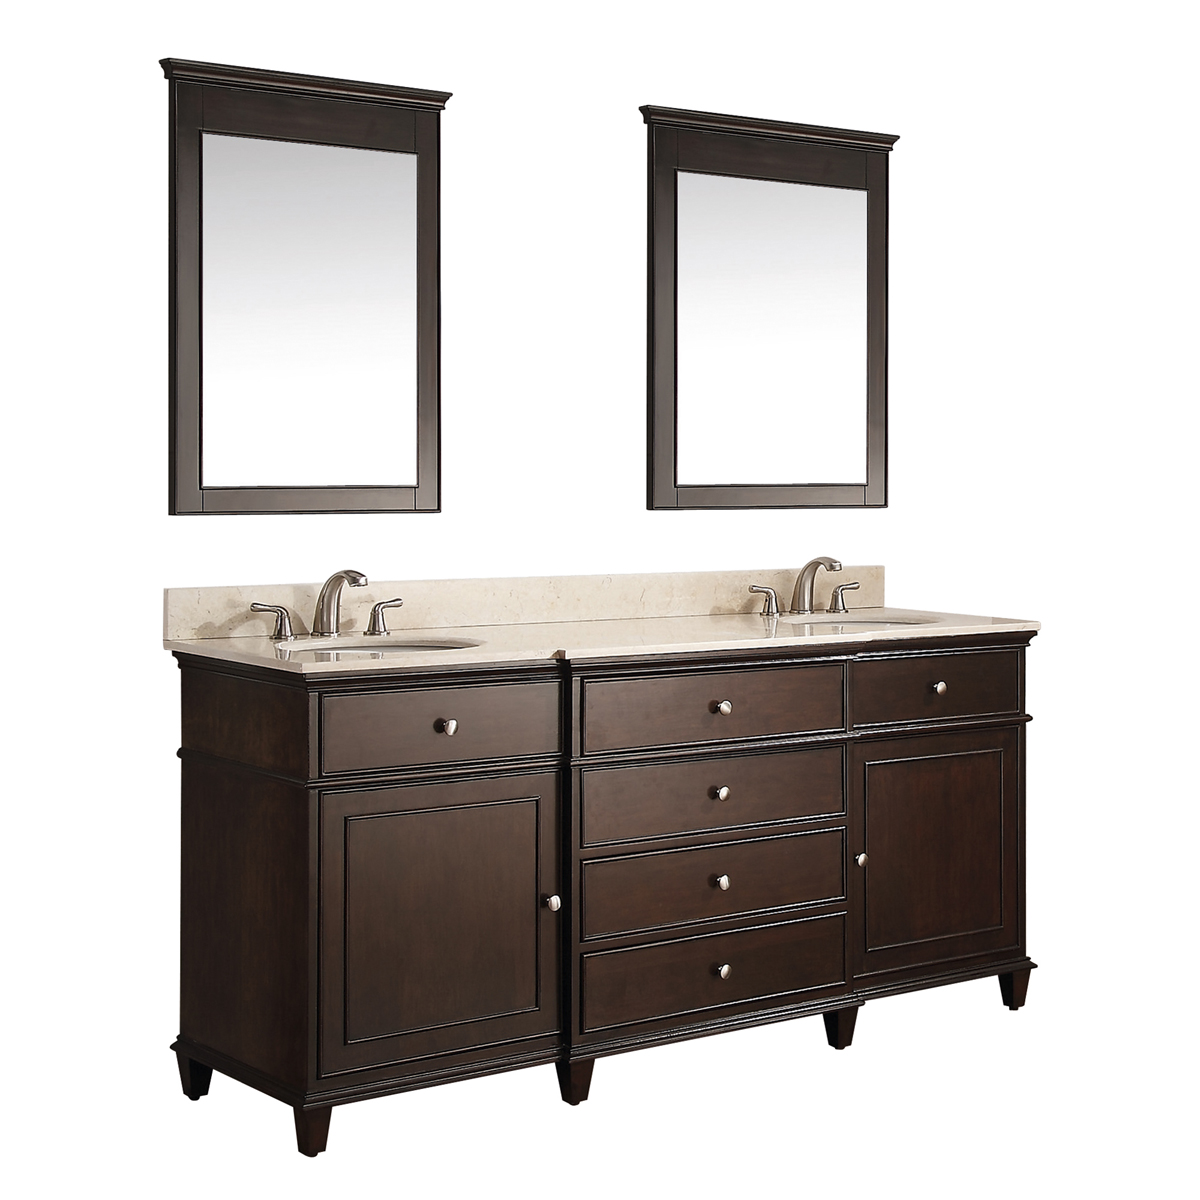 "61"" Cesarina Double Vanity in Walnut - Shown with optional mirrors"